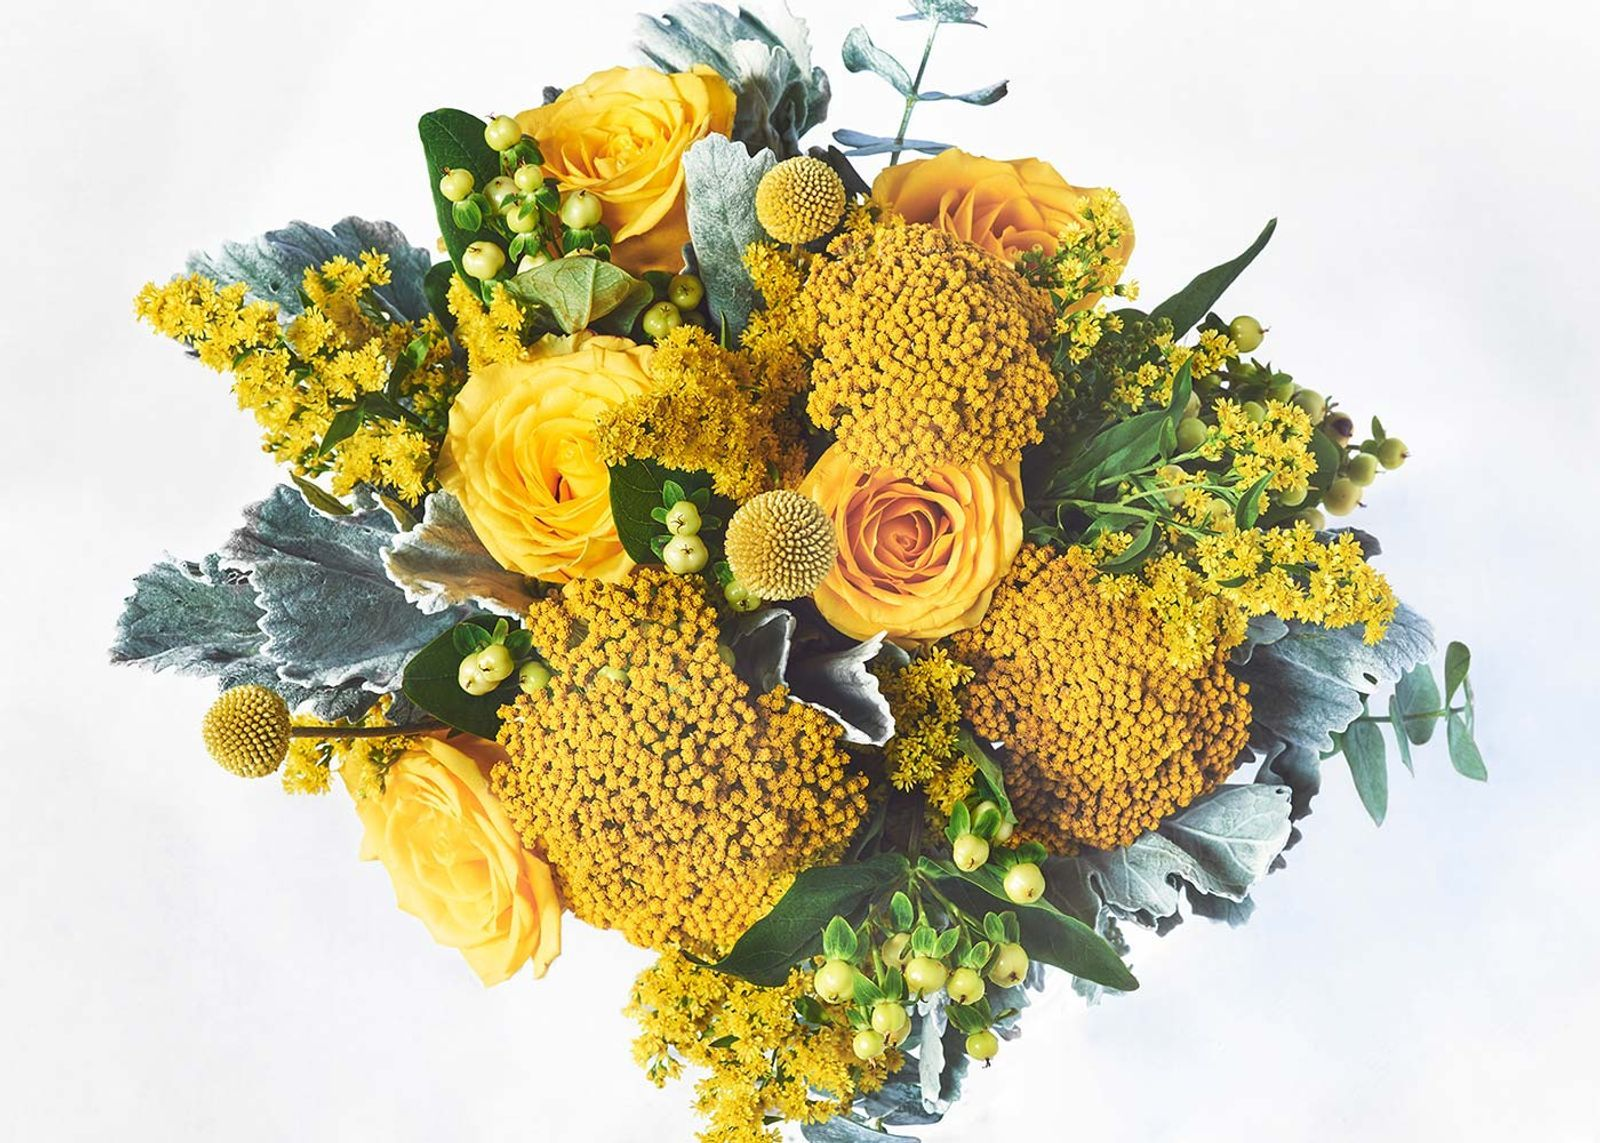 The Lemon Twist UrbanStems Online flower delivery